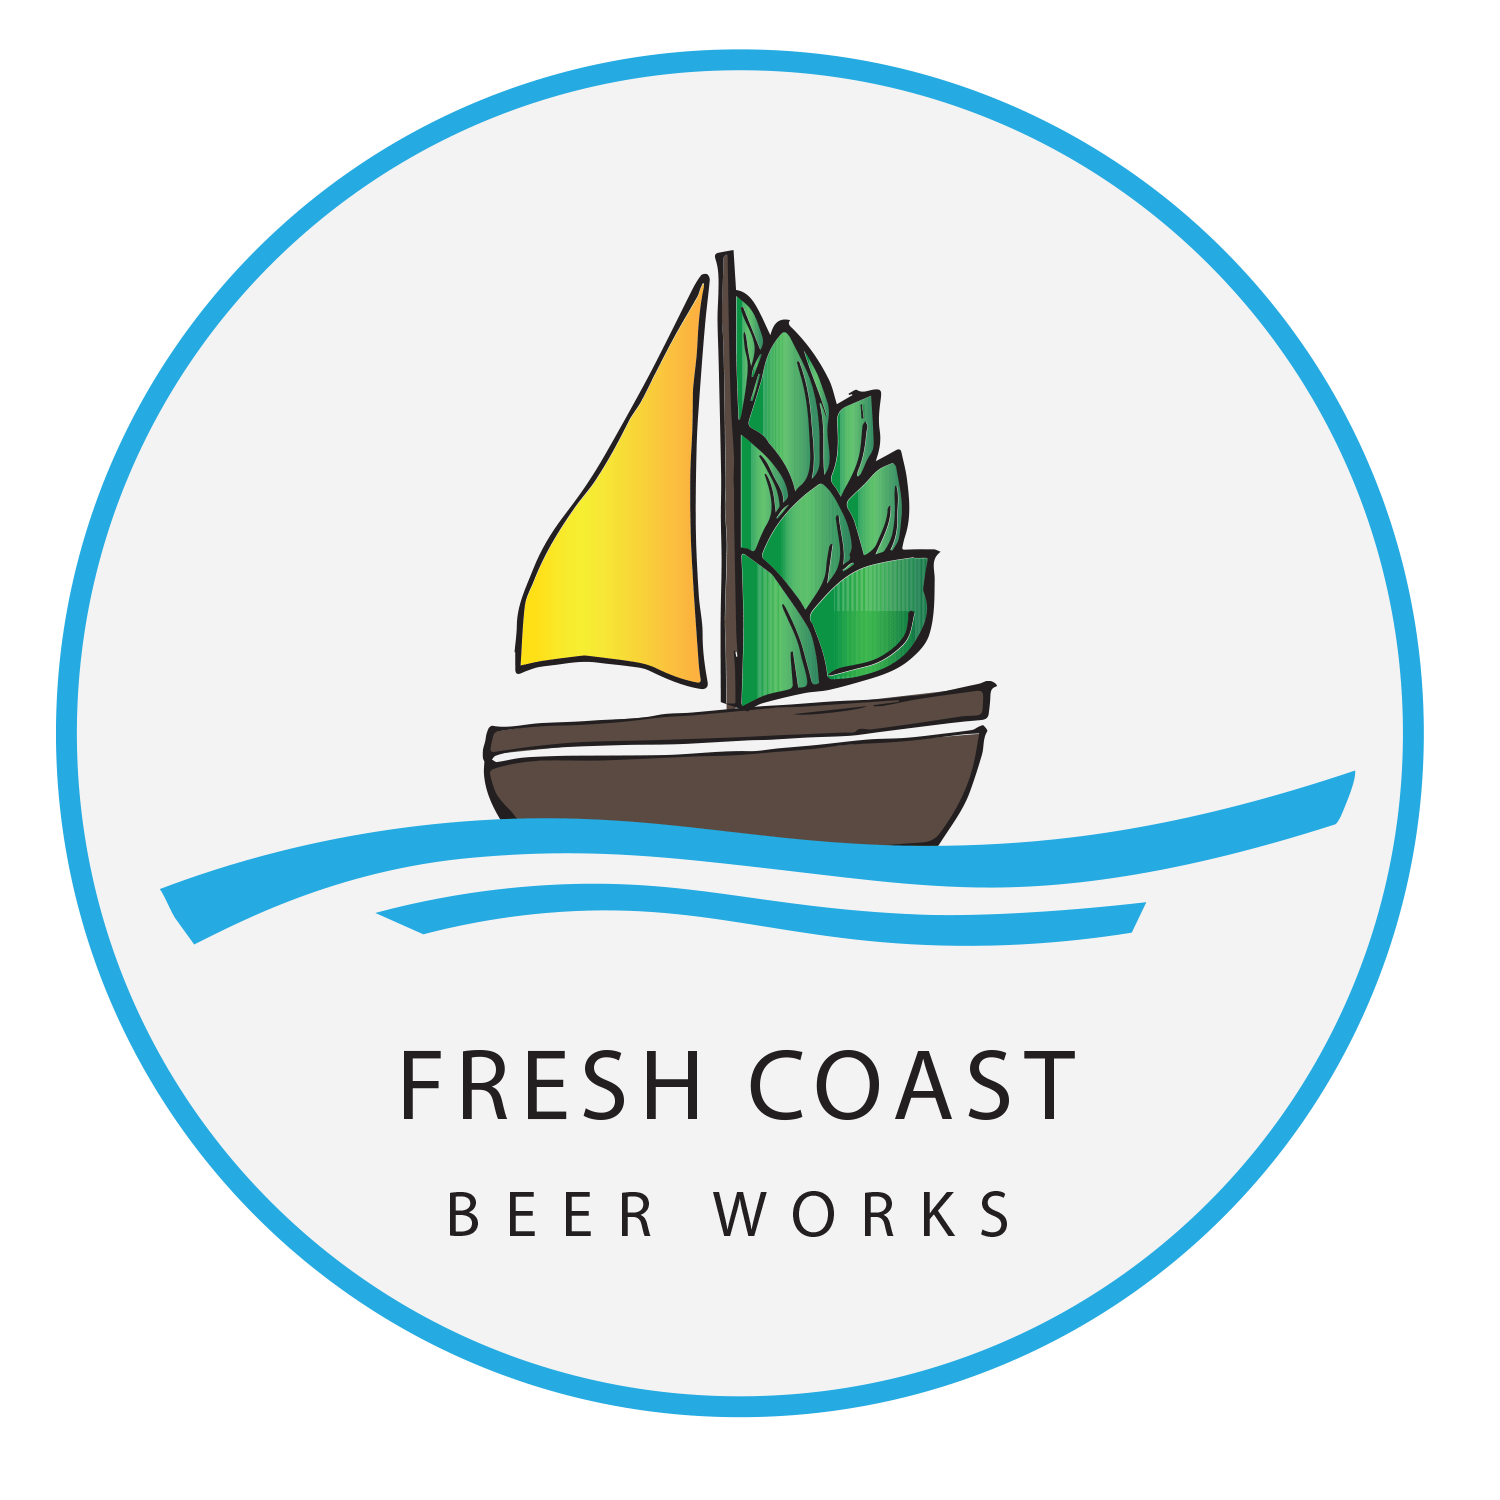 Fresh Coast Beer Works